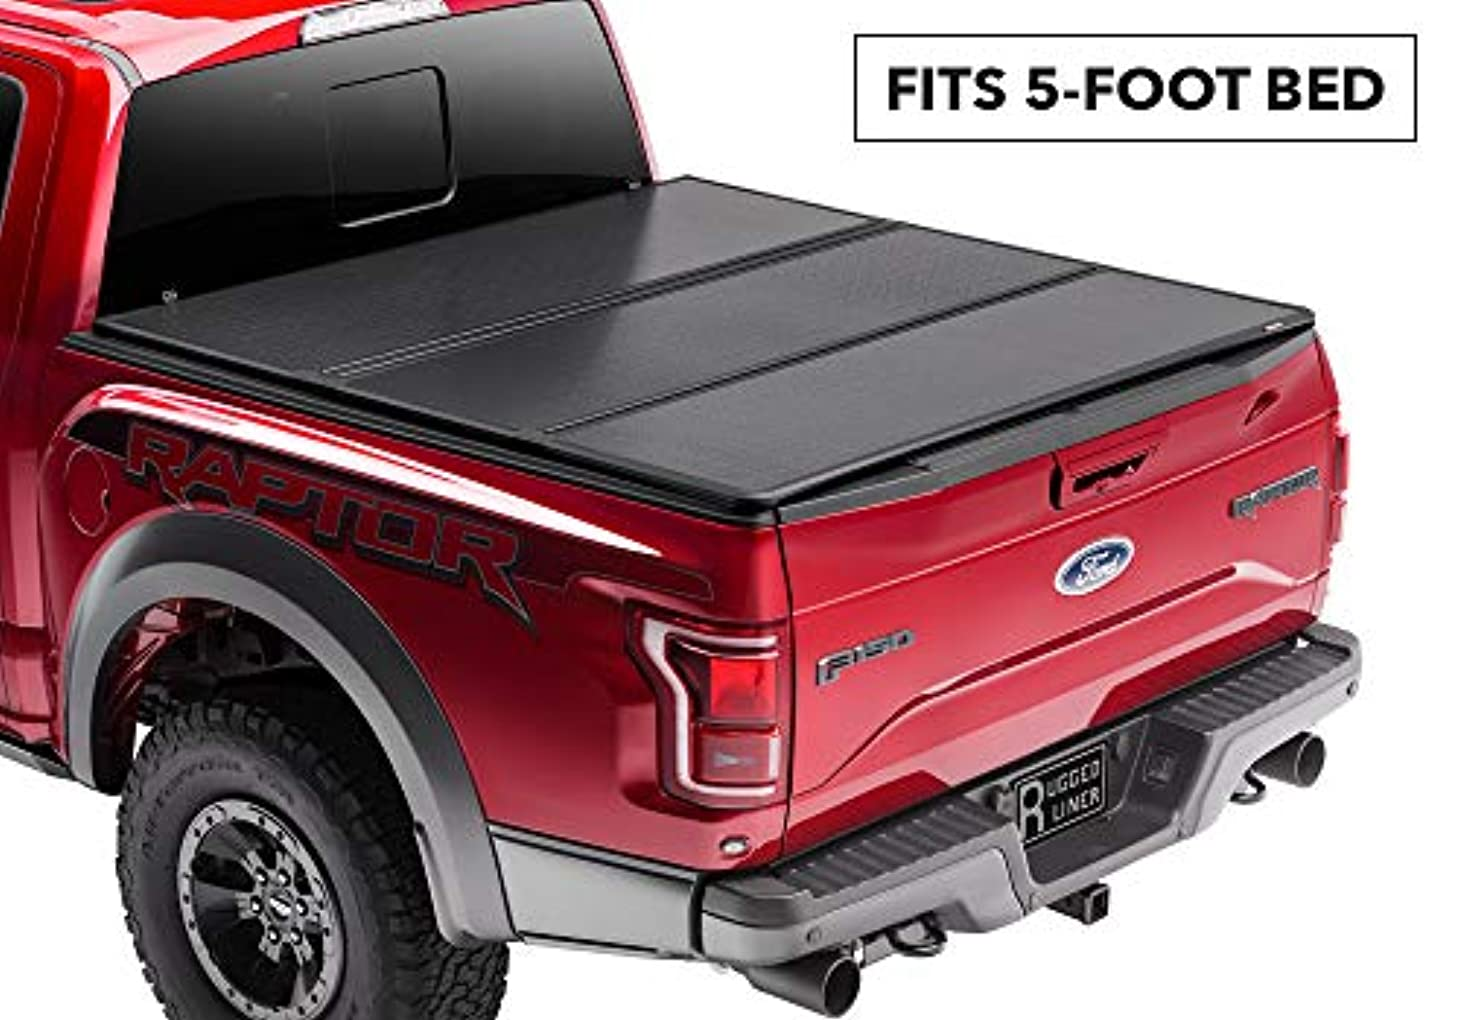 Rugged Liner Premium Hard Folding Truck Bed Tonneau Cover   HC-T516   fits 16-18 Toyota Tacoma Double Cab  5ft. (with utility track), 5' bed